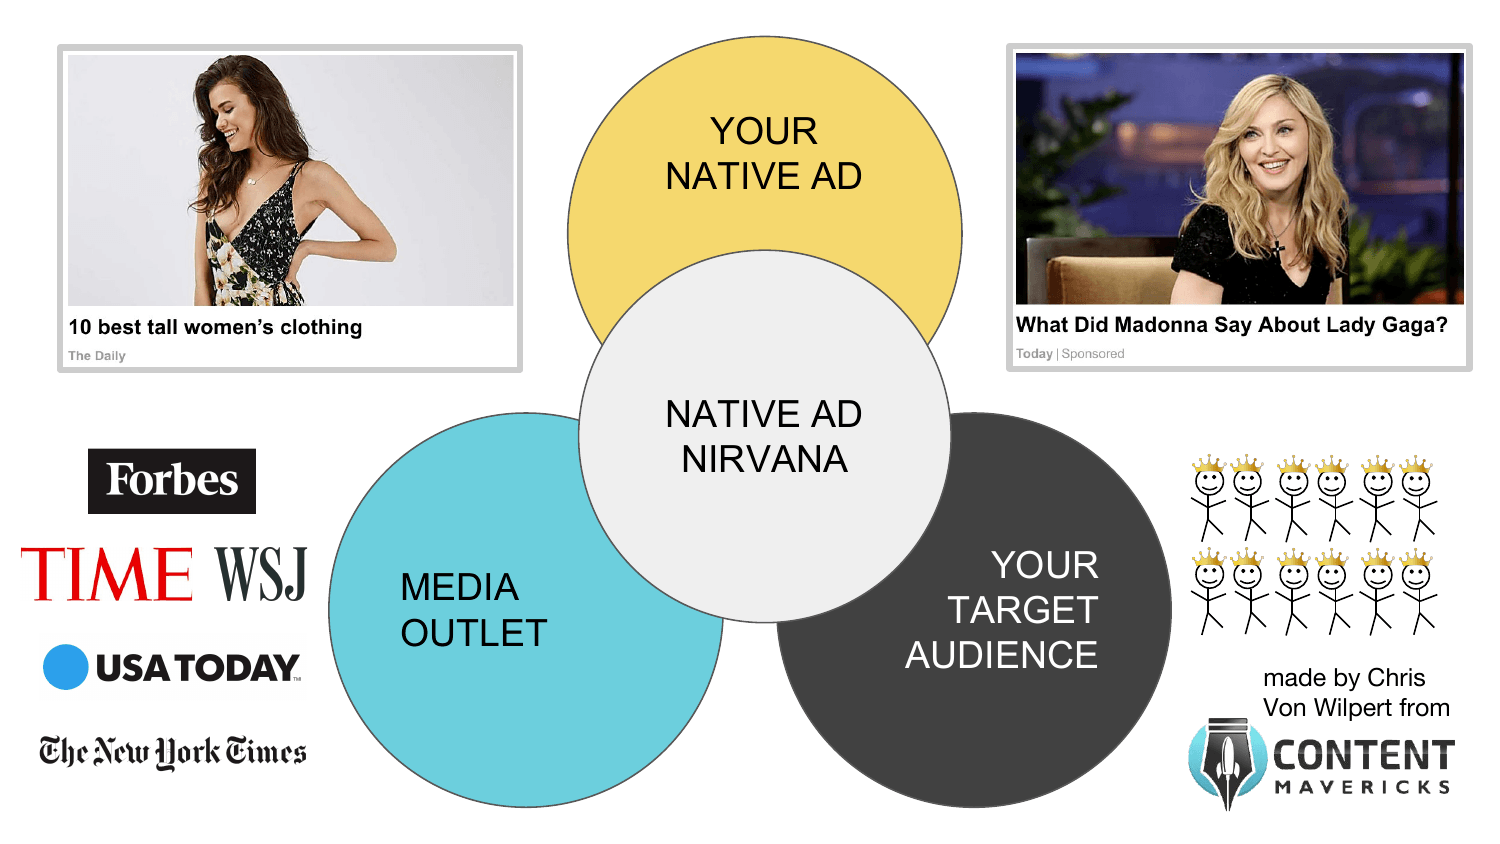 native ad nirvana image